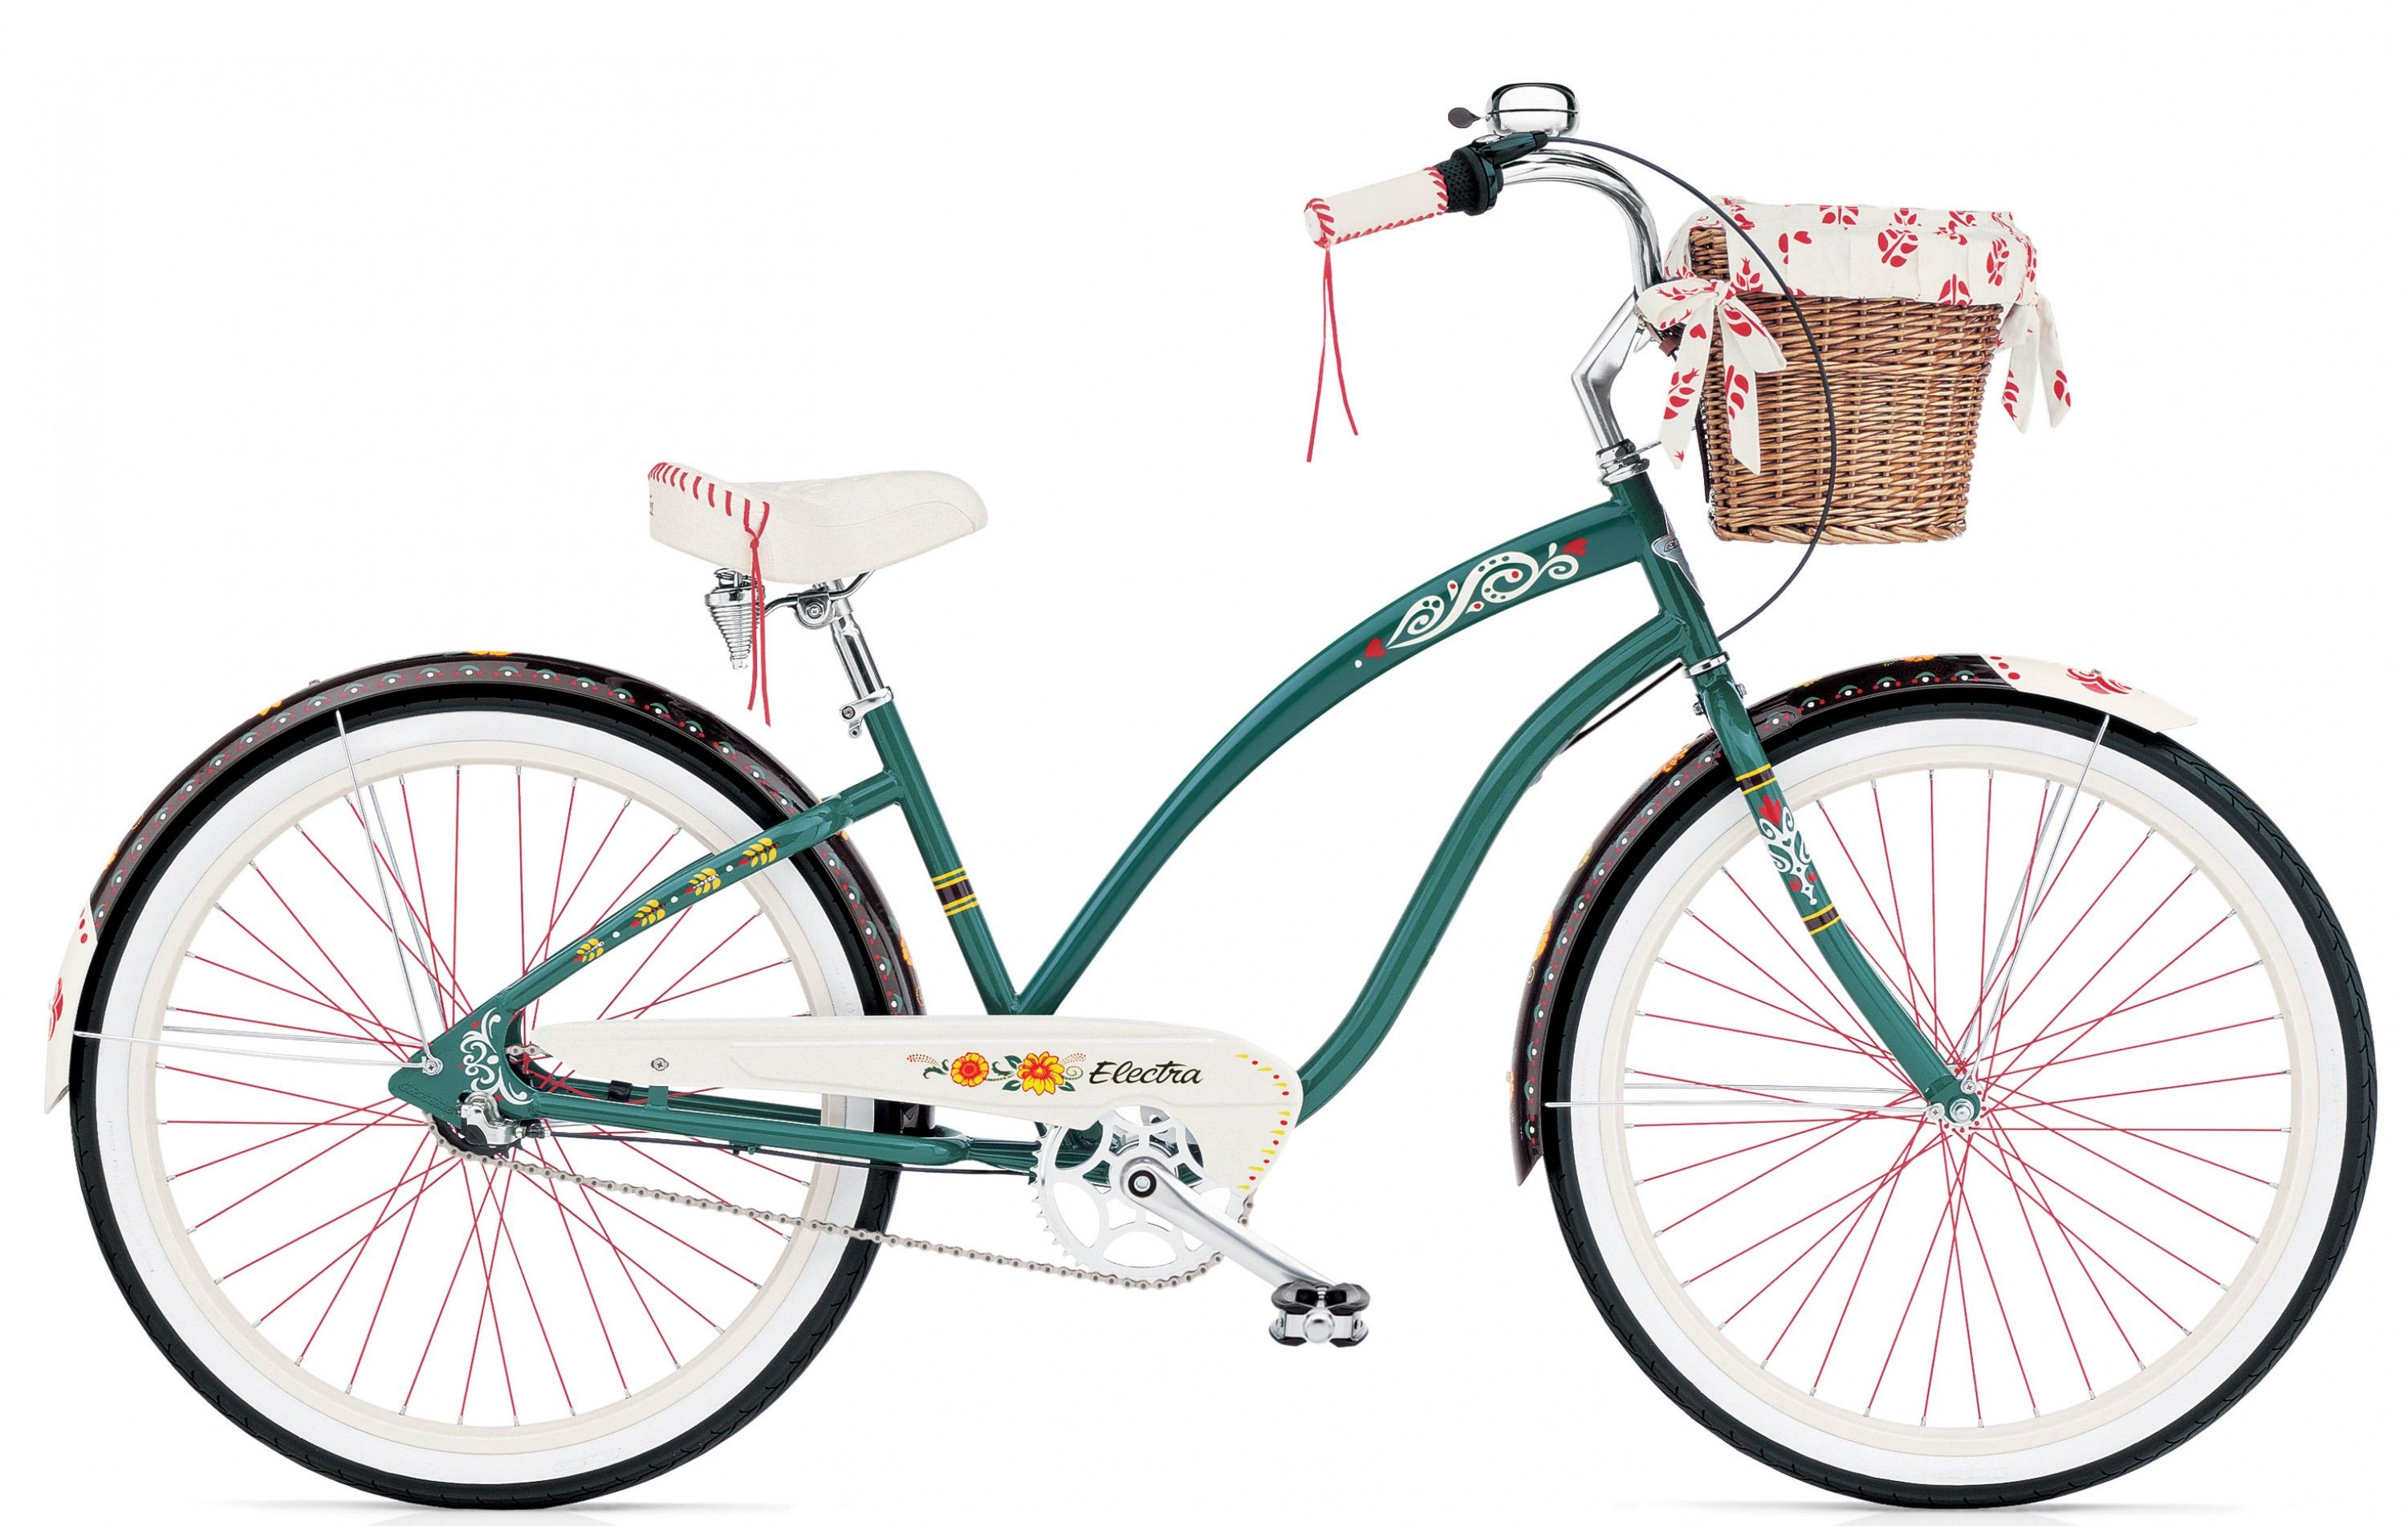 Electra Bicycle Company Bikes Accessories Electra Bikes Electra Bike Cruiser Bicycle Electra Bicycles